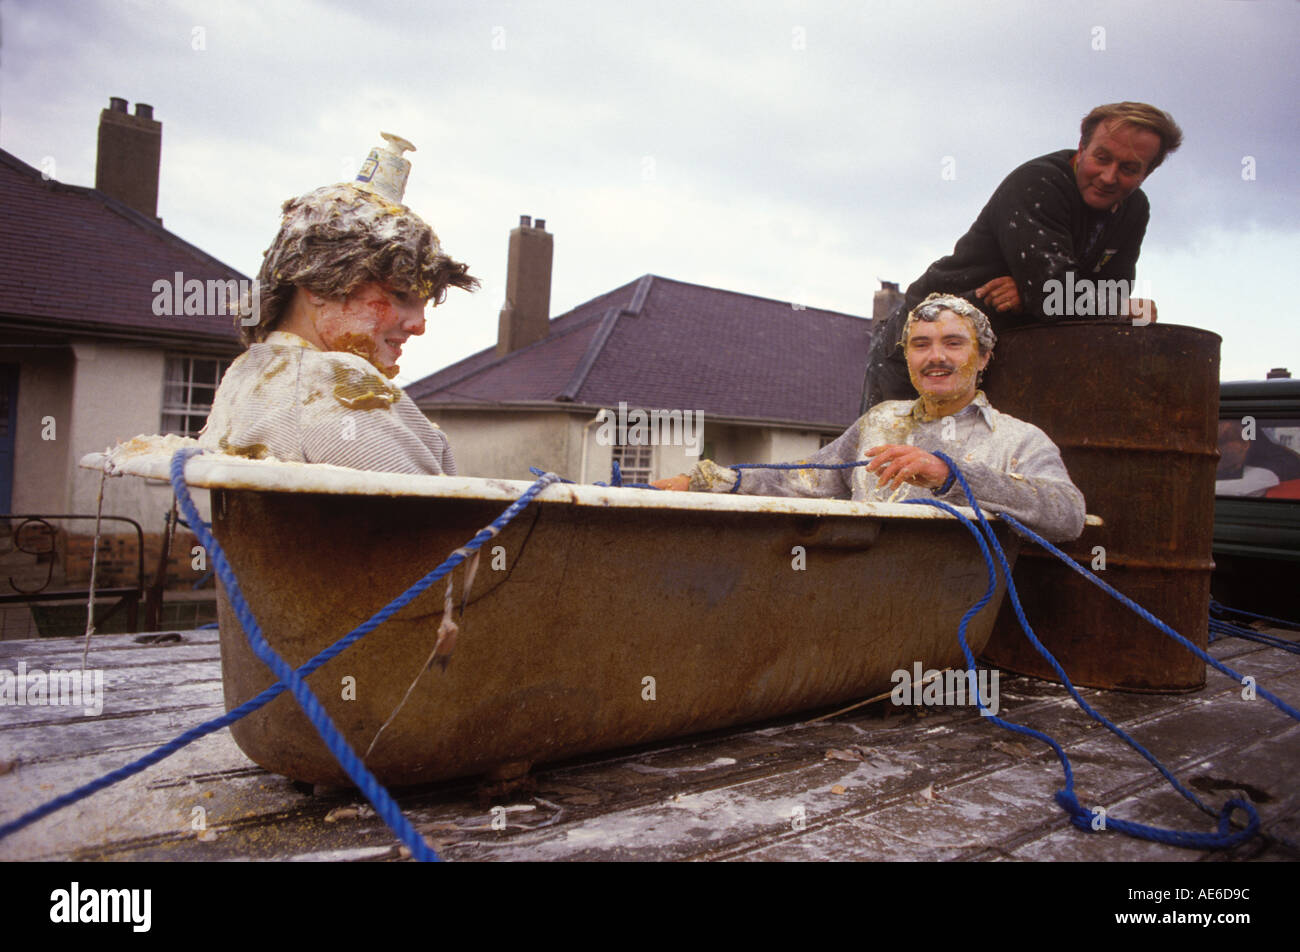 Blackening of the bride and groom, a pre wedding festival Mallaig Scotland UK HOMER SYKES - Stock Image